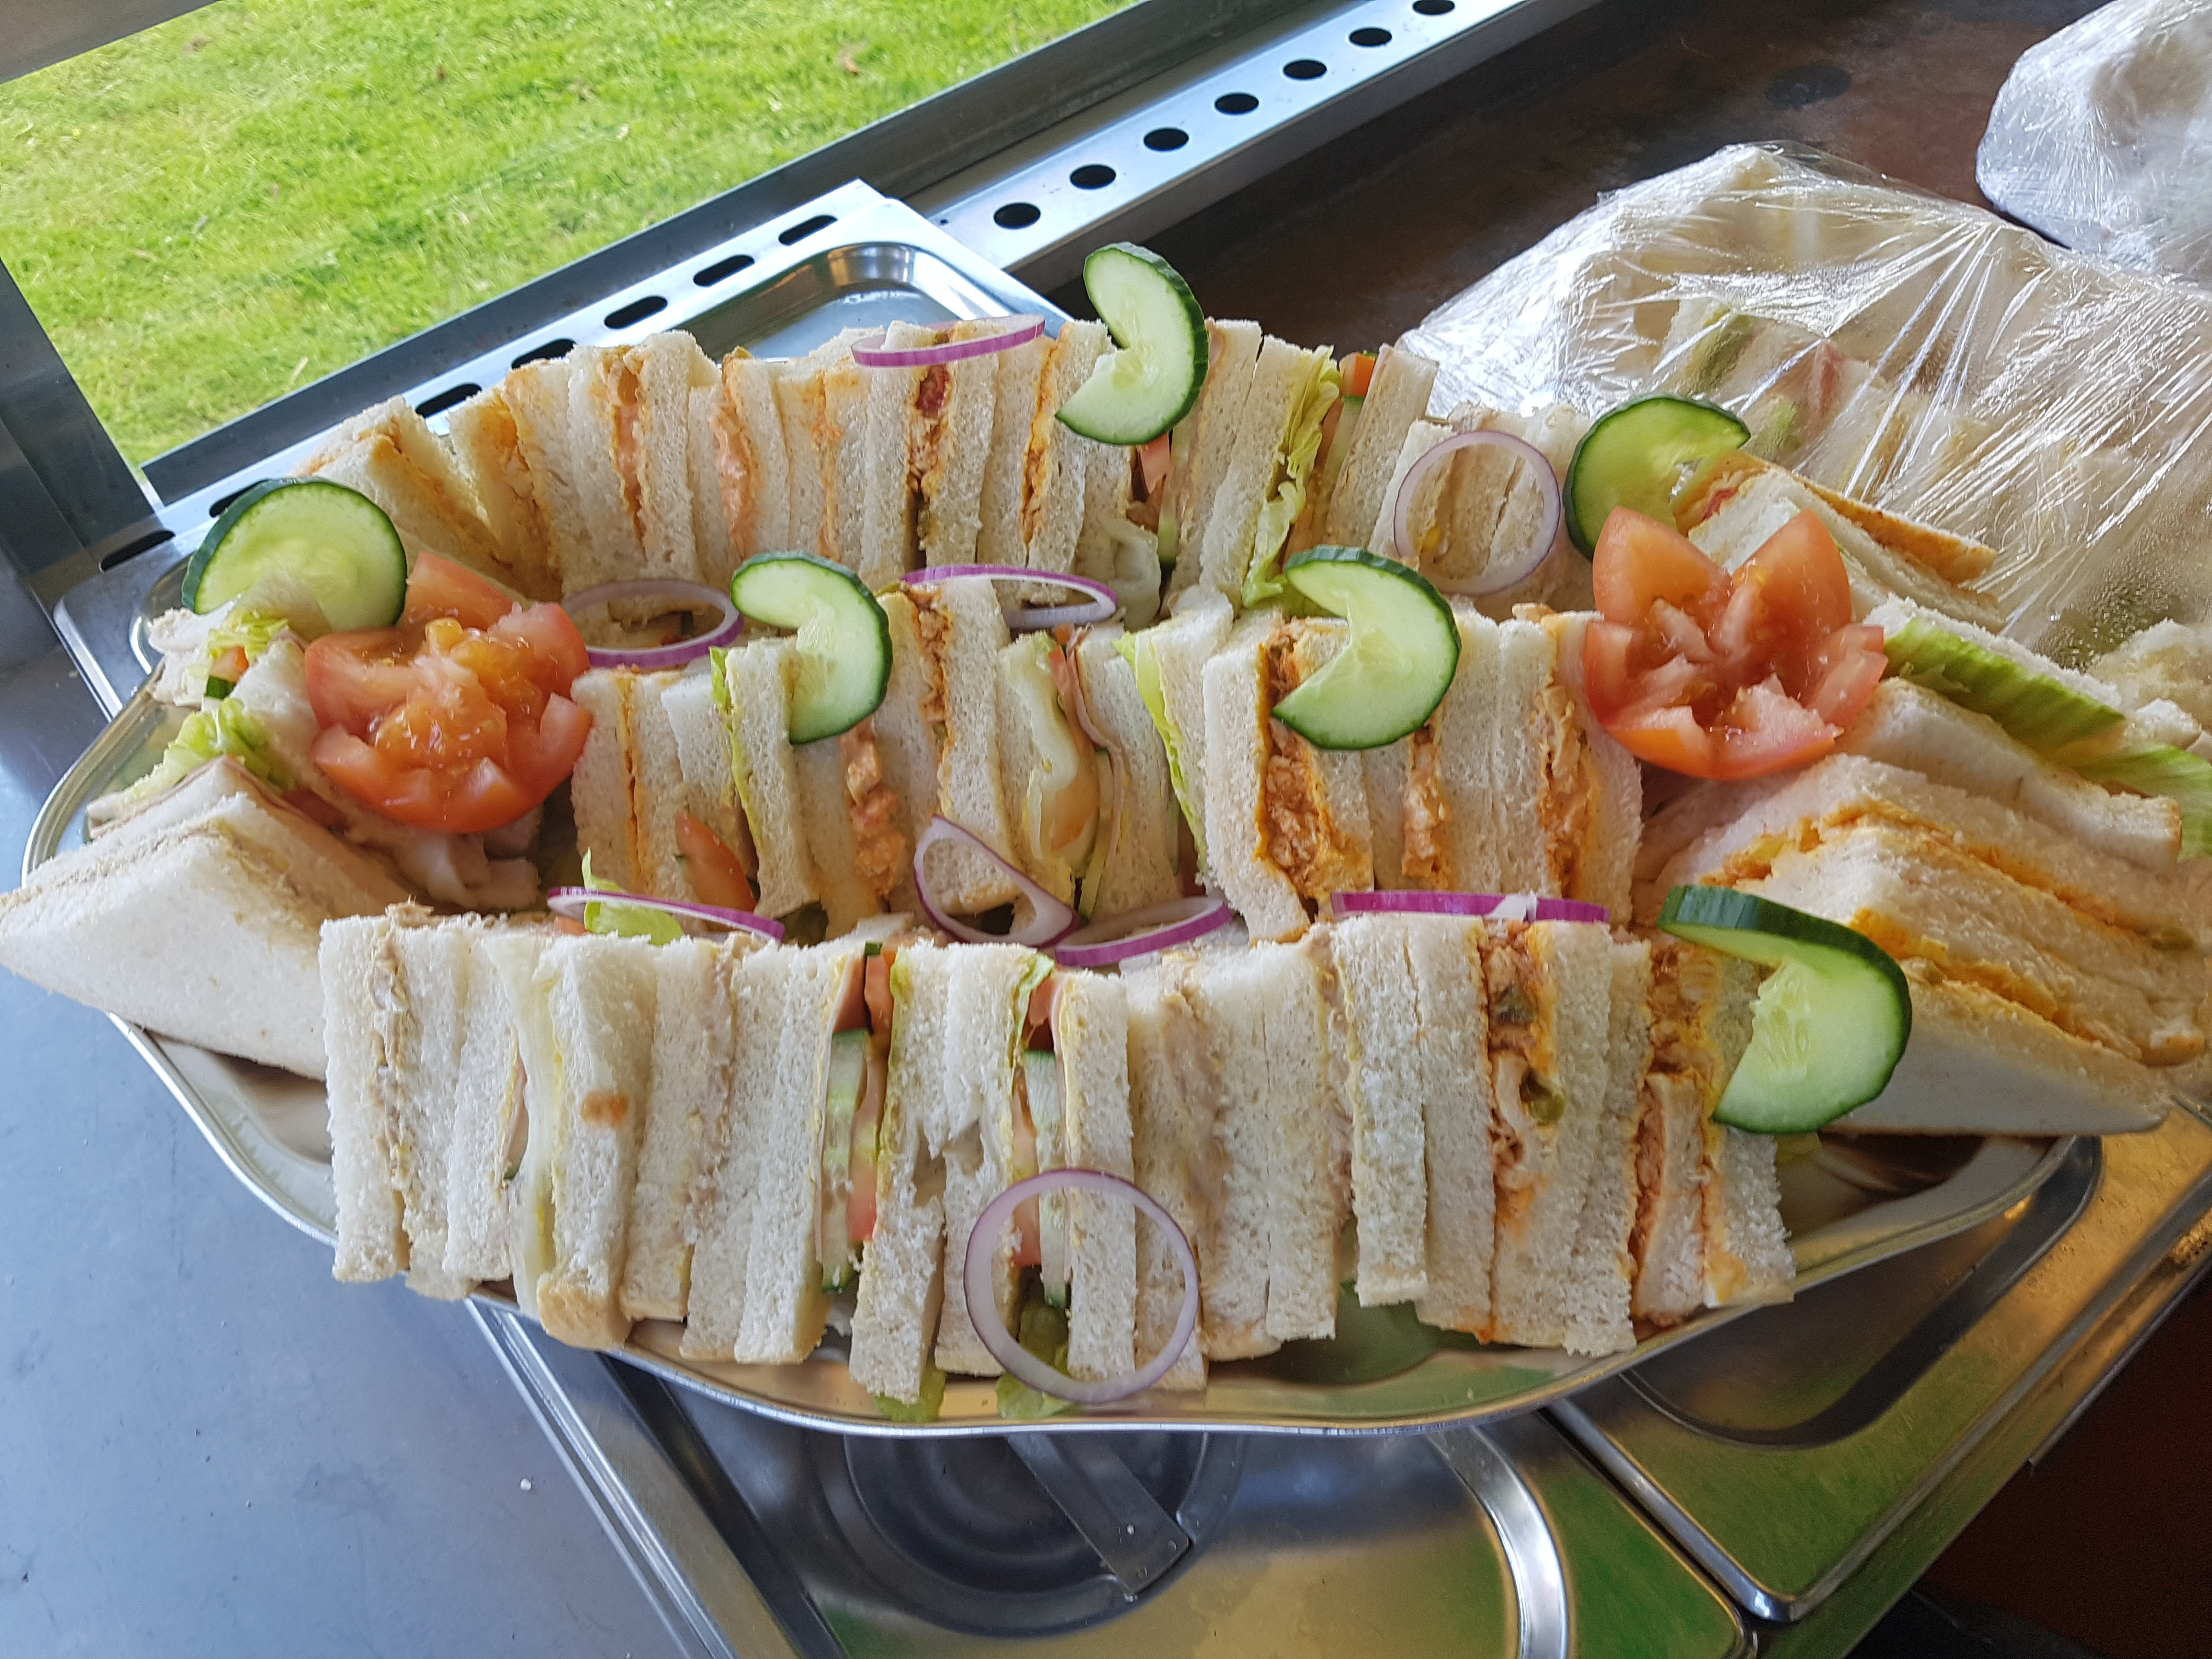 Virgin Media Mobile Catering Express Catering